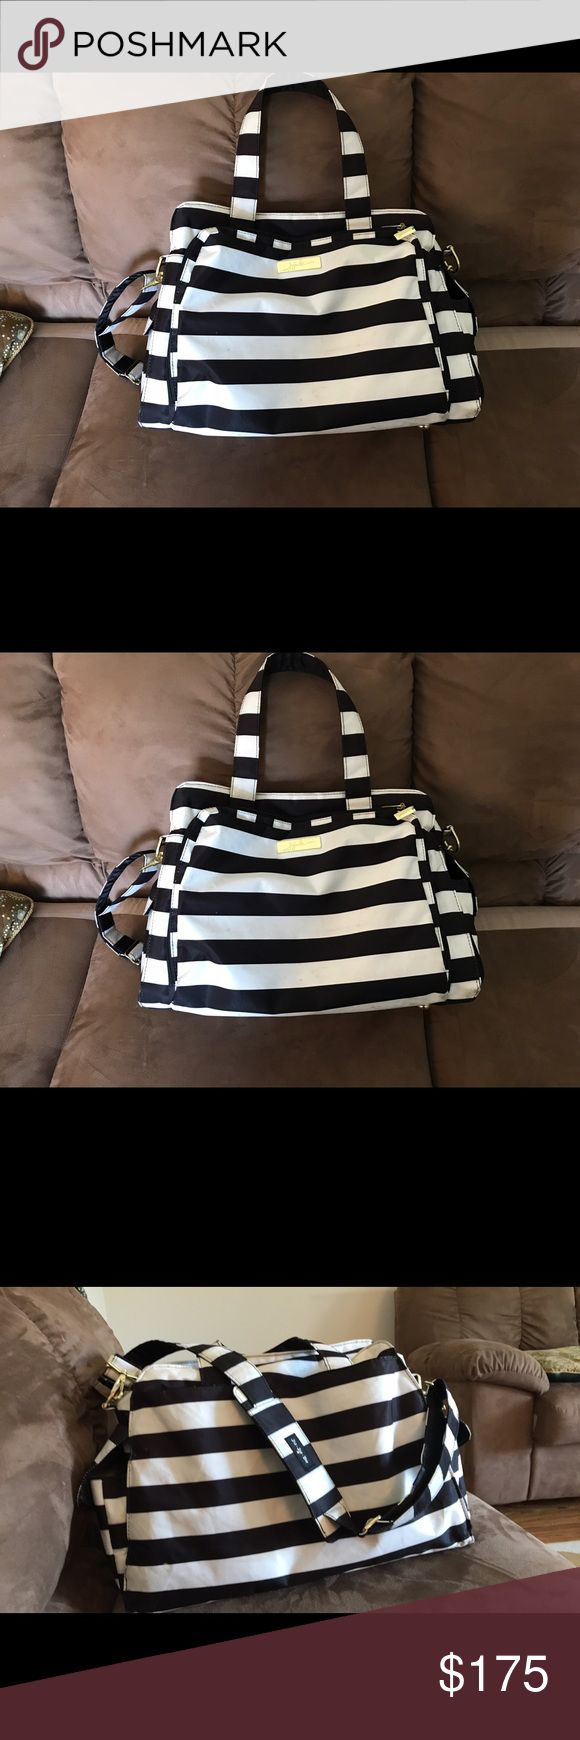 Jujube Be Prepared Diaper Bag EUC jujube Be Prepared diaper bag. Minor scuffs visible but would prob come out with a good wash. Changing pad included.      Willing to trade for a Be Right Back! jujuBe Bags Baby Bags